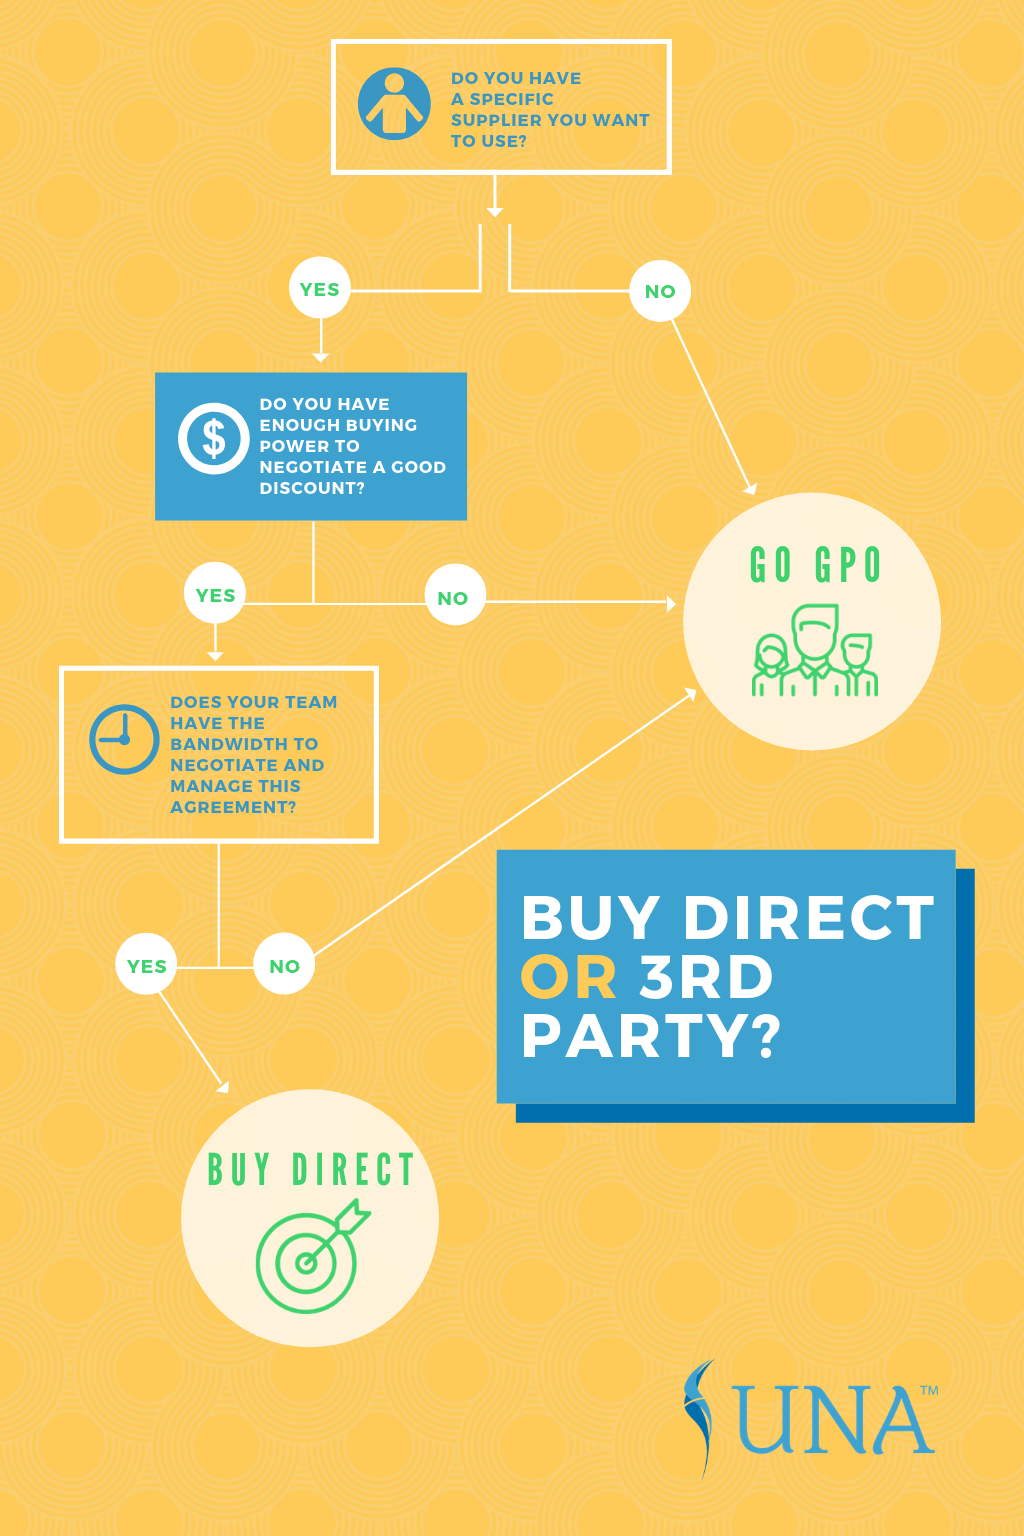 Procurement Strategy_Is It Better to Purchase Through the Vendor or 3rd Party?_Infographic